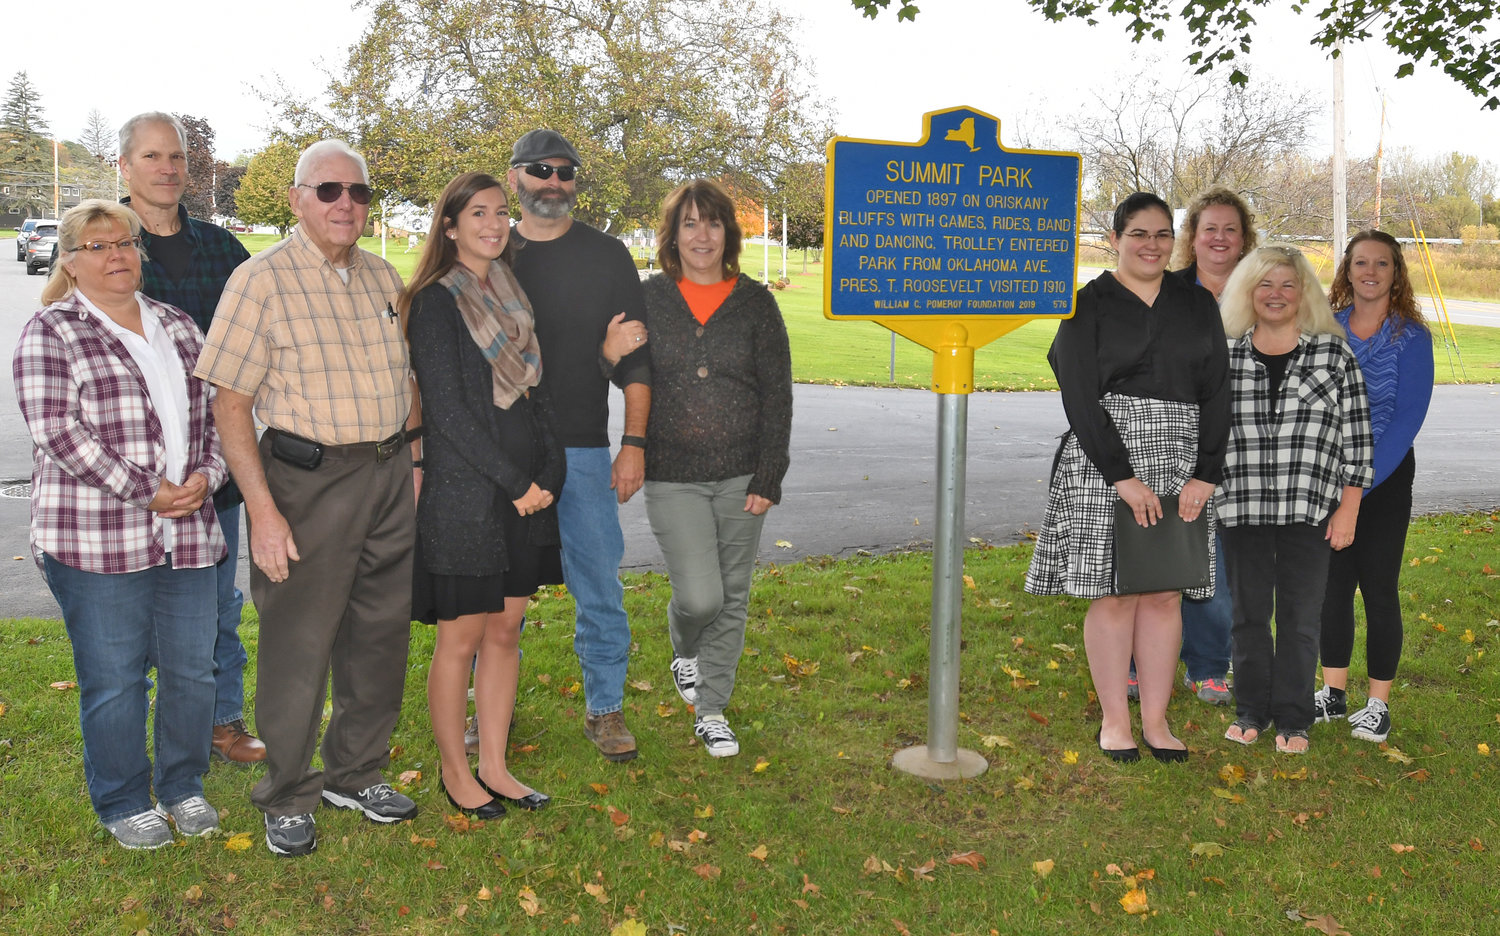 CELEBRATING THEIR HISTORY — Members of the board of directors for the Battle of Oriskany Historical Society gather around the new historical signage at Summit Park in the village. From left: Amy Kasprzyk; John Kasprzyk, village of Oriskany trustee; Charles Smith, historical society treasurer; Kelley Bogner; Jim Miller; Deb Miller; Alexis Werchowski Albright, Oriskany Museum curator; Jennifer Werchowski; Pam Tarasiewicz; and Stacy Lindfield. The signage was made possible, in part, by a gift of the William G. Pomeroy Foundation.